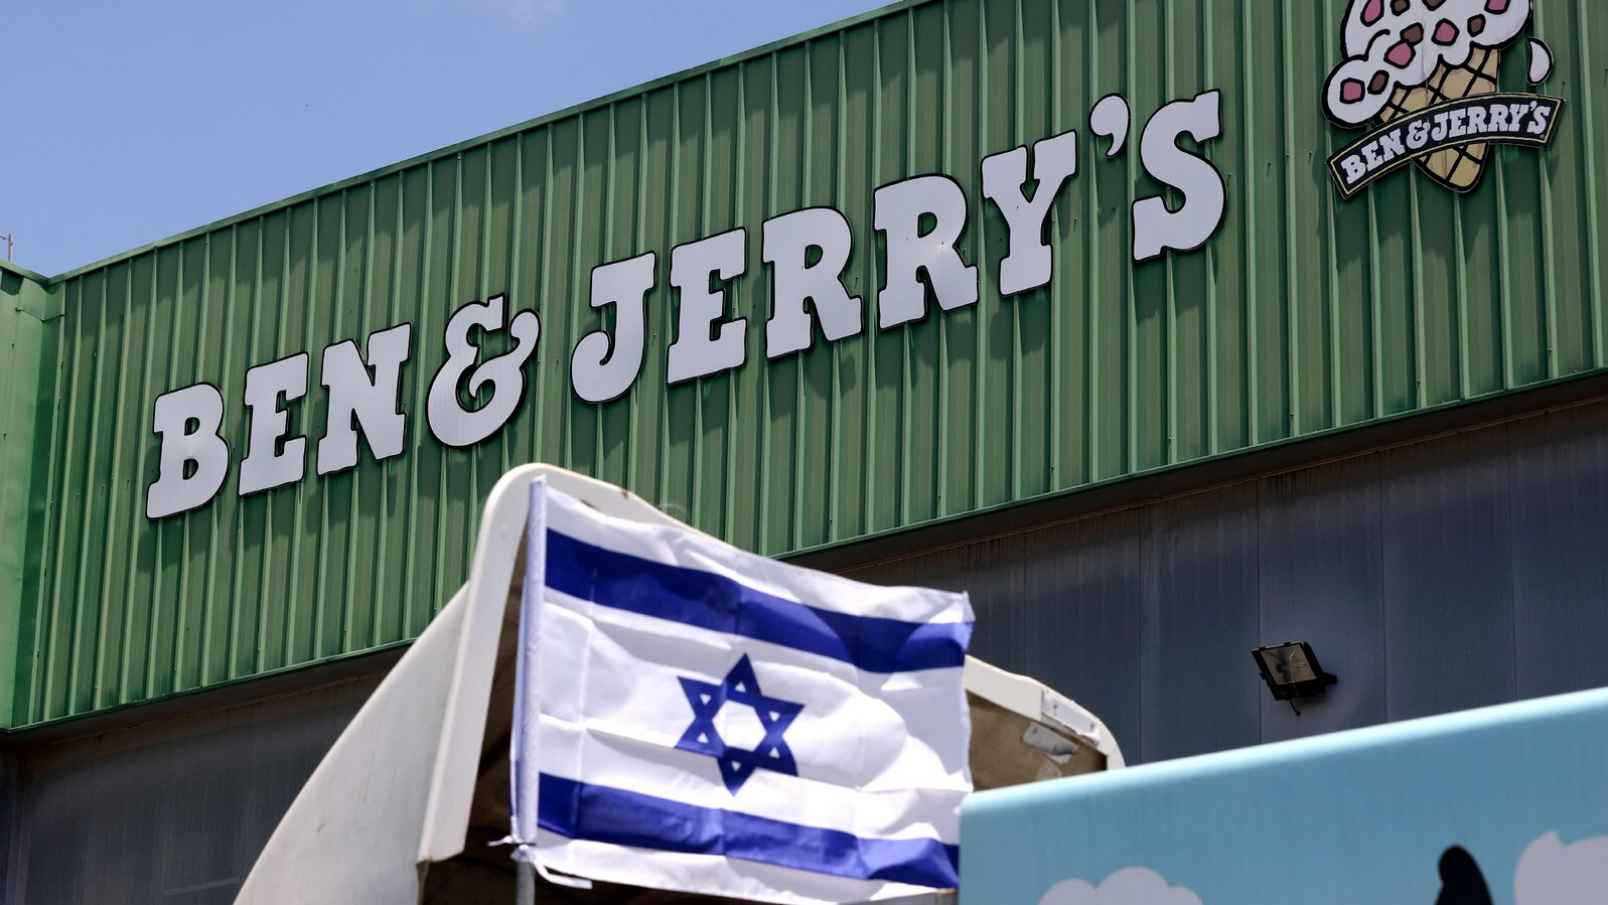 AZ, NJ Become First States to Divest from Ben & Jerry's - Frontpagemag